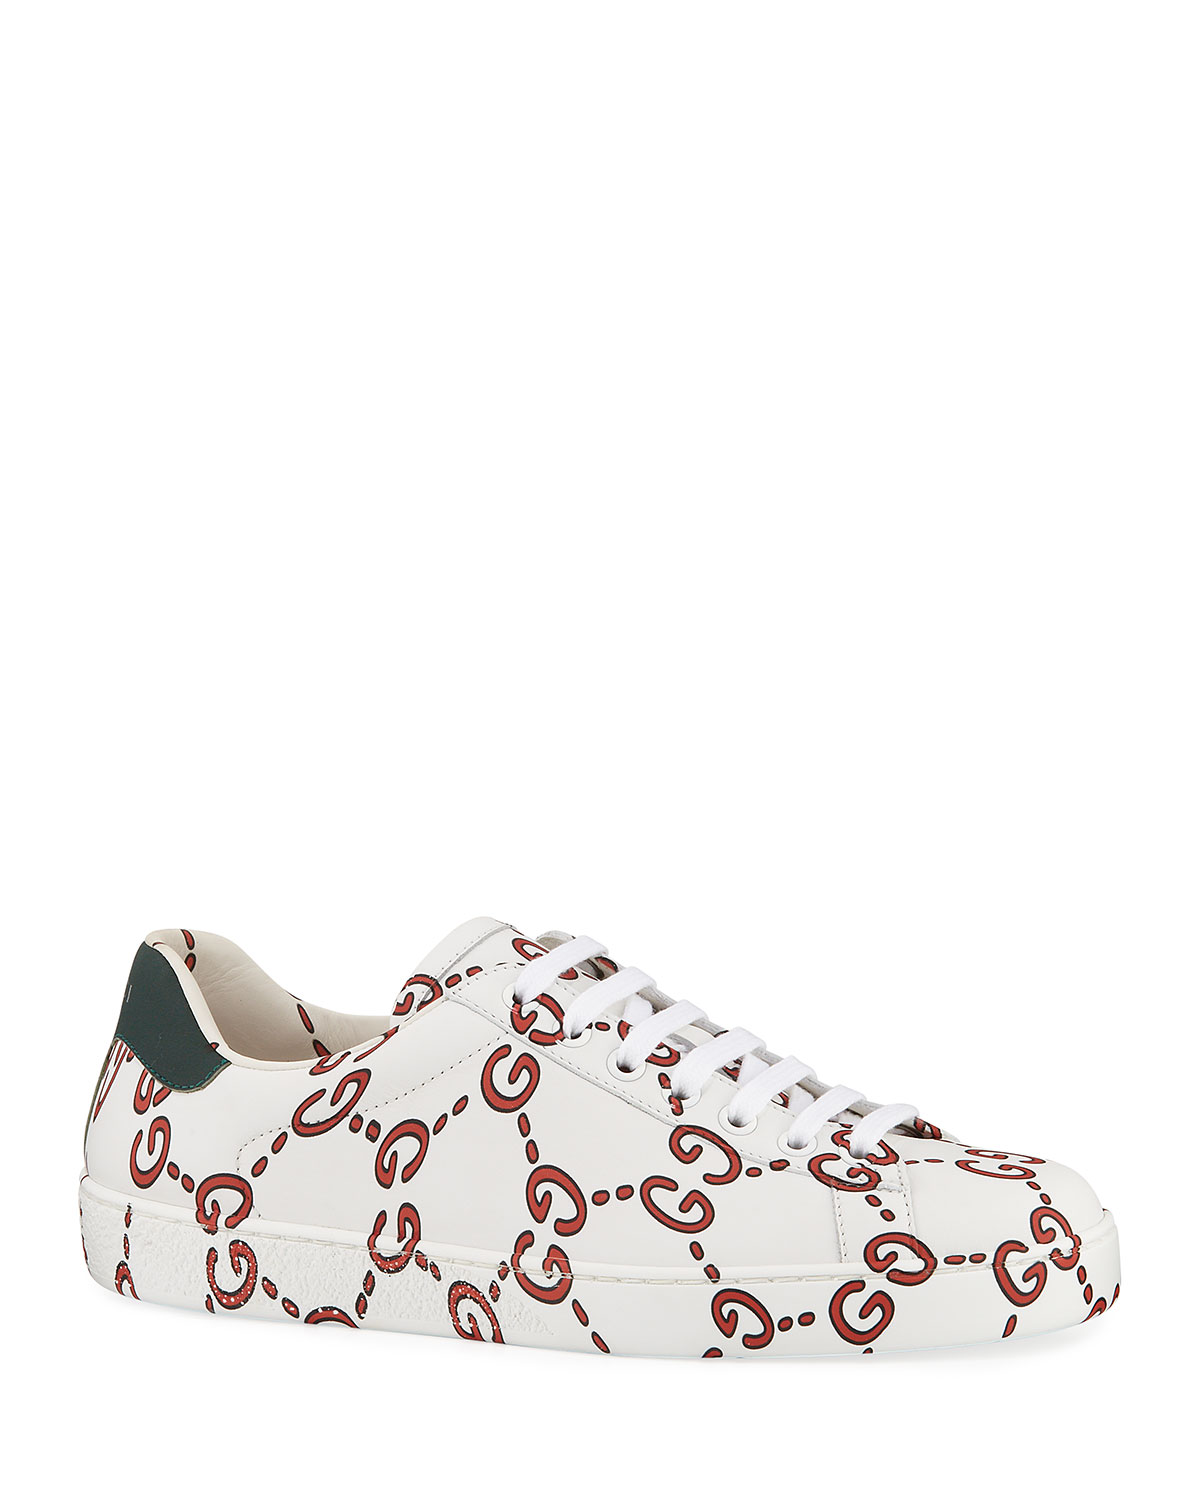 aef0a207b52 Gucci Ace Sneaker with GG Print